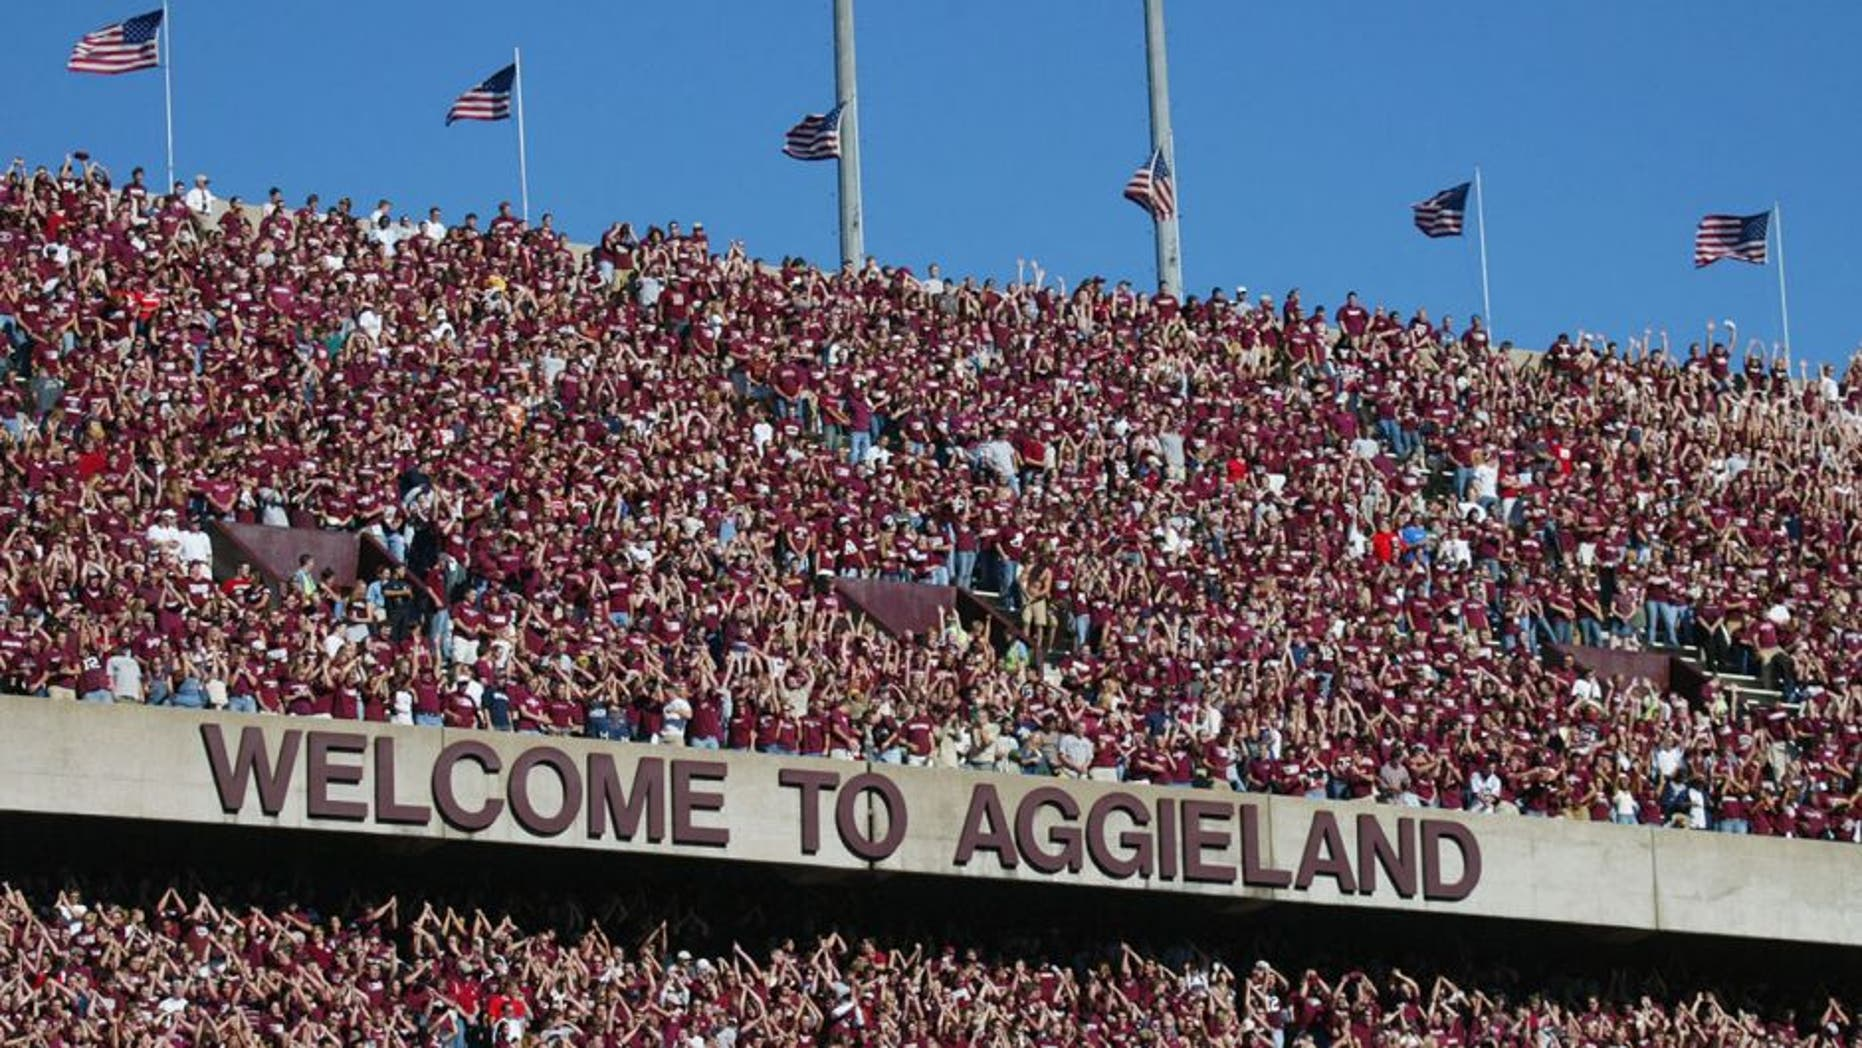 COLLEGE STATION, TX - NOVEMBER 6: Texas A&M University Aggies fans, sometimes referred to as the 12th Man, watch the game against the University of Oklahoma Sooners on November 6, 2004 at Kyle Field in College Station, Texas. The Sooners defeated the Aggies 42-35. (Photo by Ronald Martinez/Getty Images)